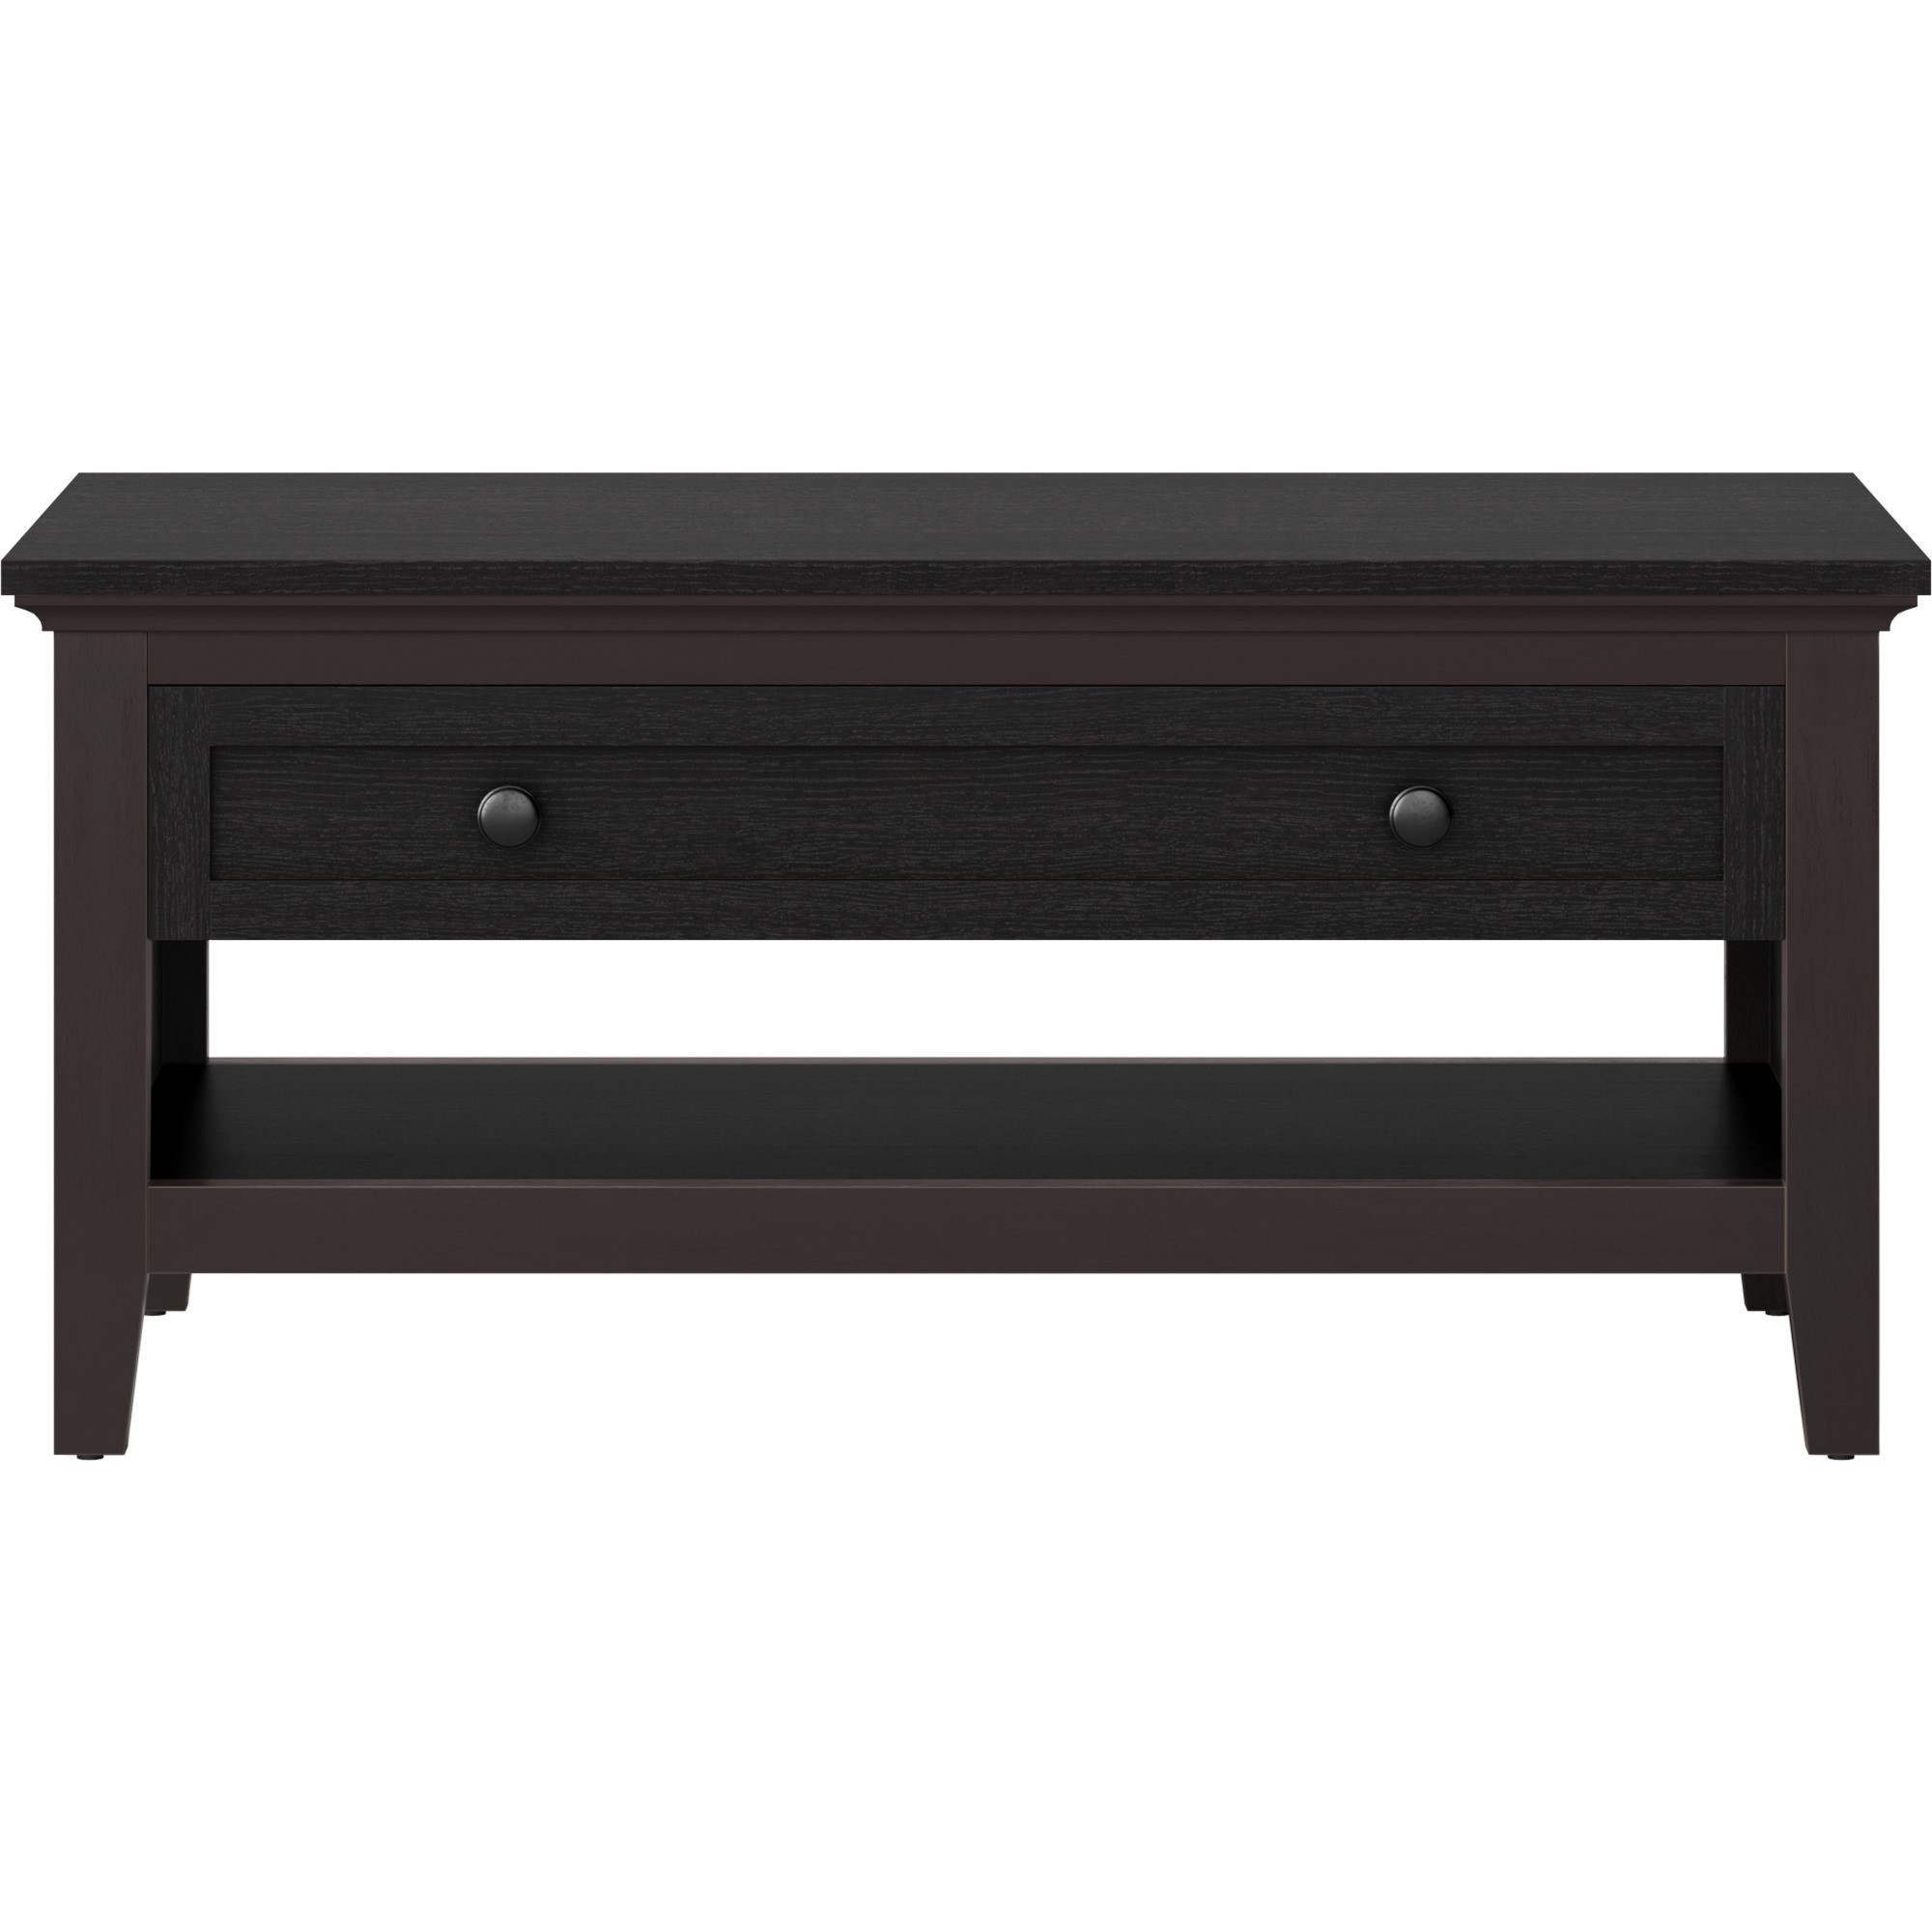 Amazing Carson Coffee Table Espresso Brown Threshold Products Cjindustries Chair Design For Home Cjindustriesco